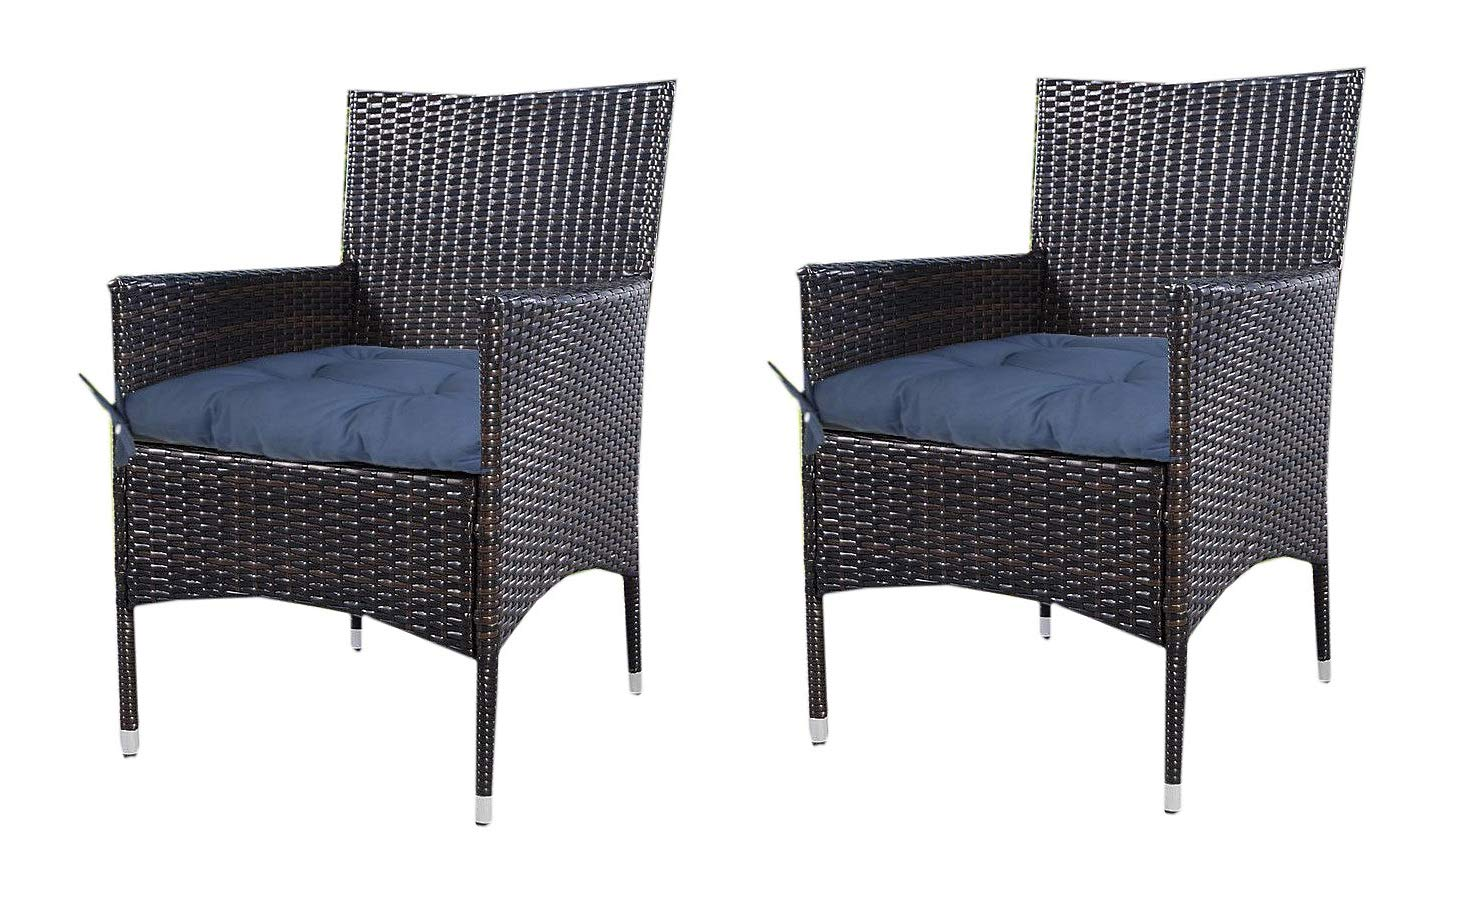 Prettyshop4246 Indoor Ourdoor Wicker Warm Cushion Seat Pad Poolside Home Garden Patio Backyard Balcony Linen Fabric Made in USA Product Soap Maintain East Clean Set of 2 Pcs Navy Blue by Prettyshop4246 (Image #7)